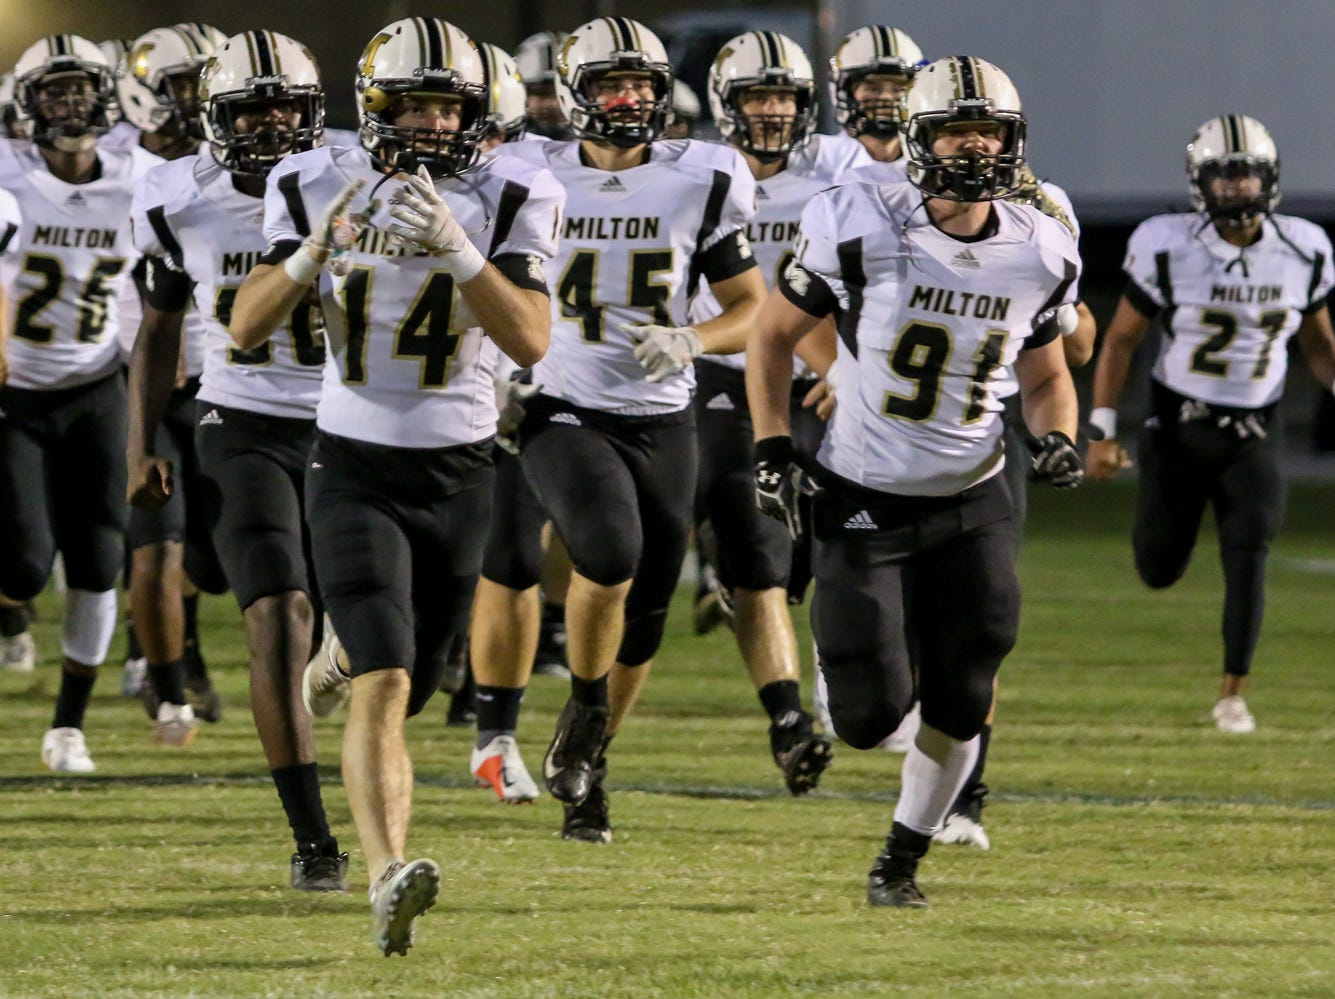 The Milton Panthers take the field against Gulf Breeze before the District 2-6A game at Gulf Breeze High School on Friday, September 28, 2018.